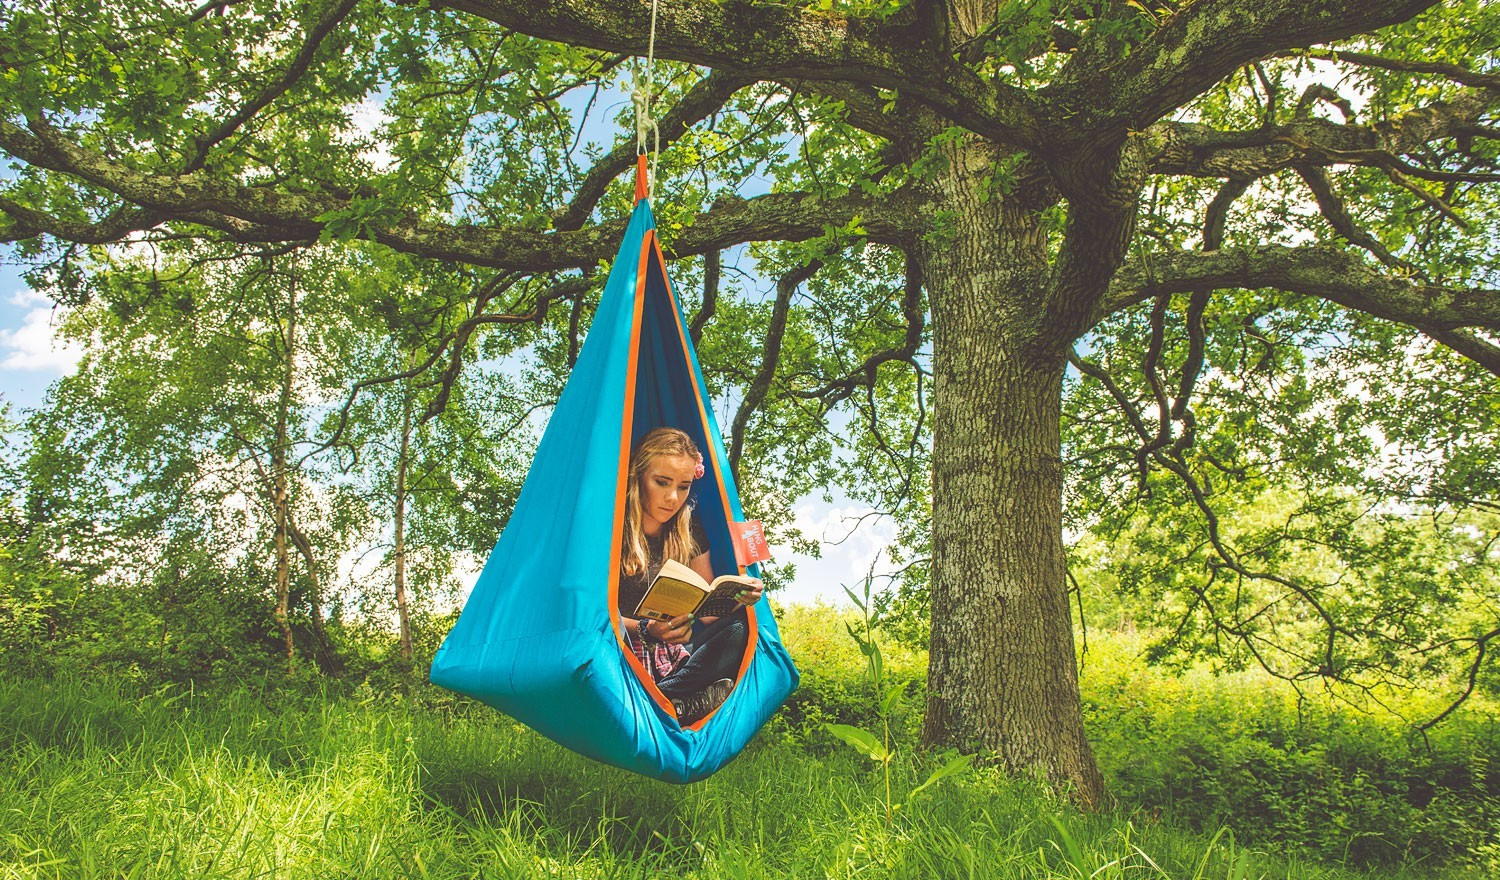 hang-about-blue-outdoor-hanging-chair-woman-reading-book_1-2